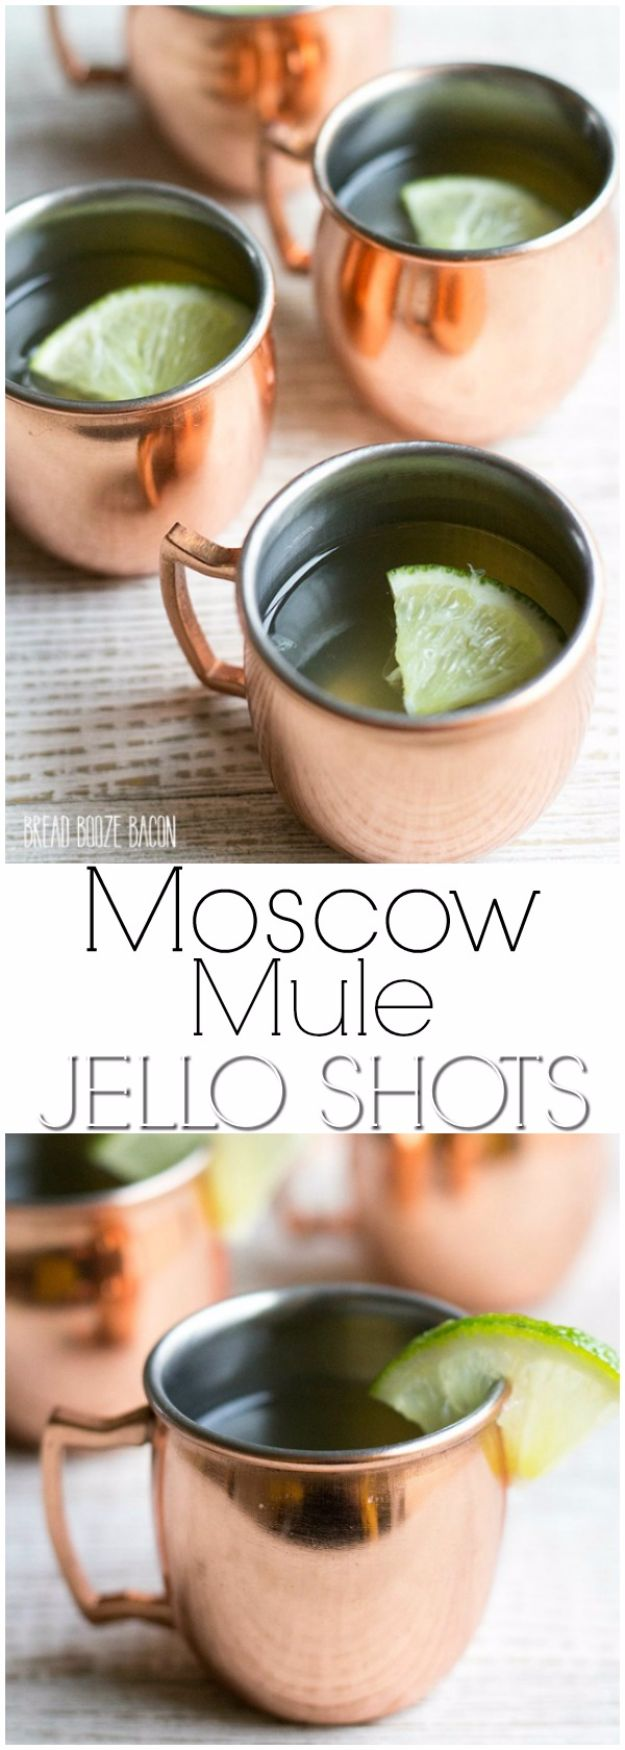 Best Jello Shot Recipes - Moscow Mule Jello Shots - Easy Jello Shots Recipe Ideas with Vodka, Strawberry, Tequila, Rum, Jolly Rancher and Creative Alcohol - Unique and Fun Drinks for Parties like Whiskey Fireball, Fall Halloween Versions, Malibu, 4th of July, Birthday, Summer, Christmas and Birthdays http://diyjoy.com/best-jello-shot-recipes